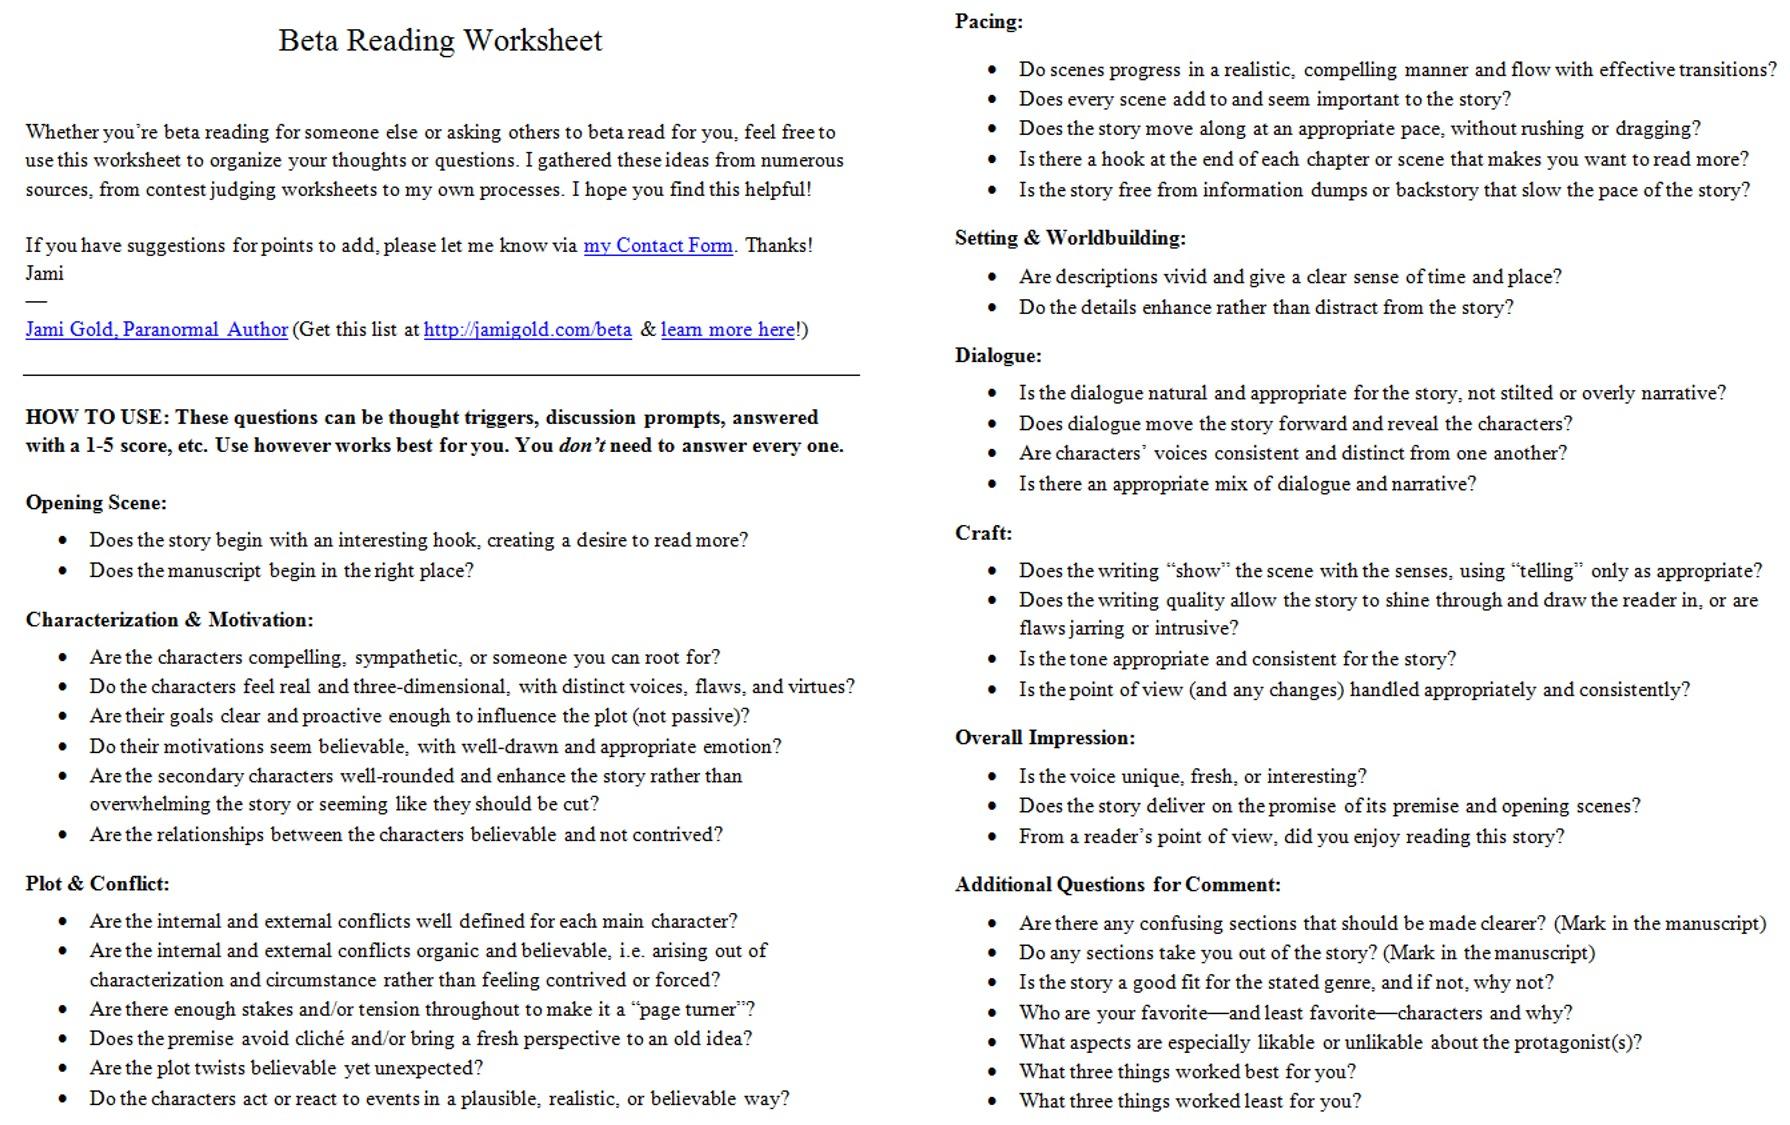 Proatmealus  Splendid Worksheets For Writers  Jami Gold Paranormal Author With Exquisite Screen Shot Of The Twopage Beta Reading Worksheet With Amazing Common Fractions To Decimals Worksheet Also Healthy Eating Worksheets Ks In Addition Skip Counting Math Worksheets And Balancing Equations Worksheet Gcse As Well As Danny The Champion Of The World Worksheets Additionally Adverb Worksheet For Nd Grade From Jamigoldcom With Proatmealus  Exquisite Worksheets For Writers  Jami Gold Paranormal Author With Amazing Screen Shot Of The Twopage Beta Reading Worksheet And Splendid Common Fractions To Decimals Worksheet Also Healthy Eating Worksheets Ks In Addition Skip Counting Math Worksheets From Jamigoldcom